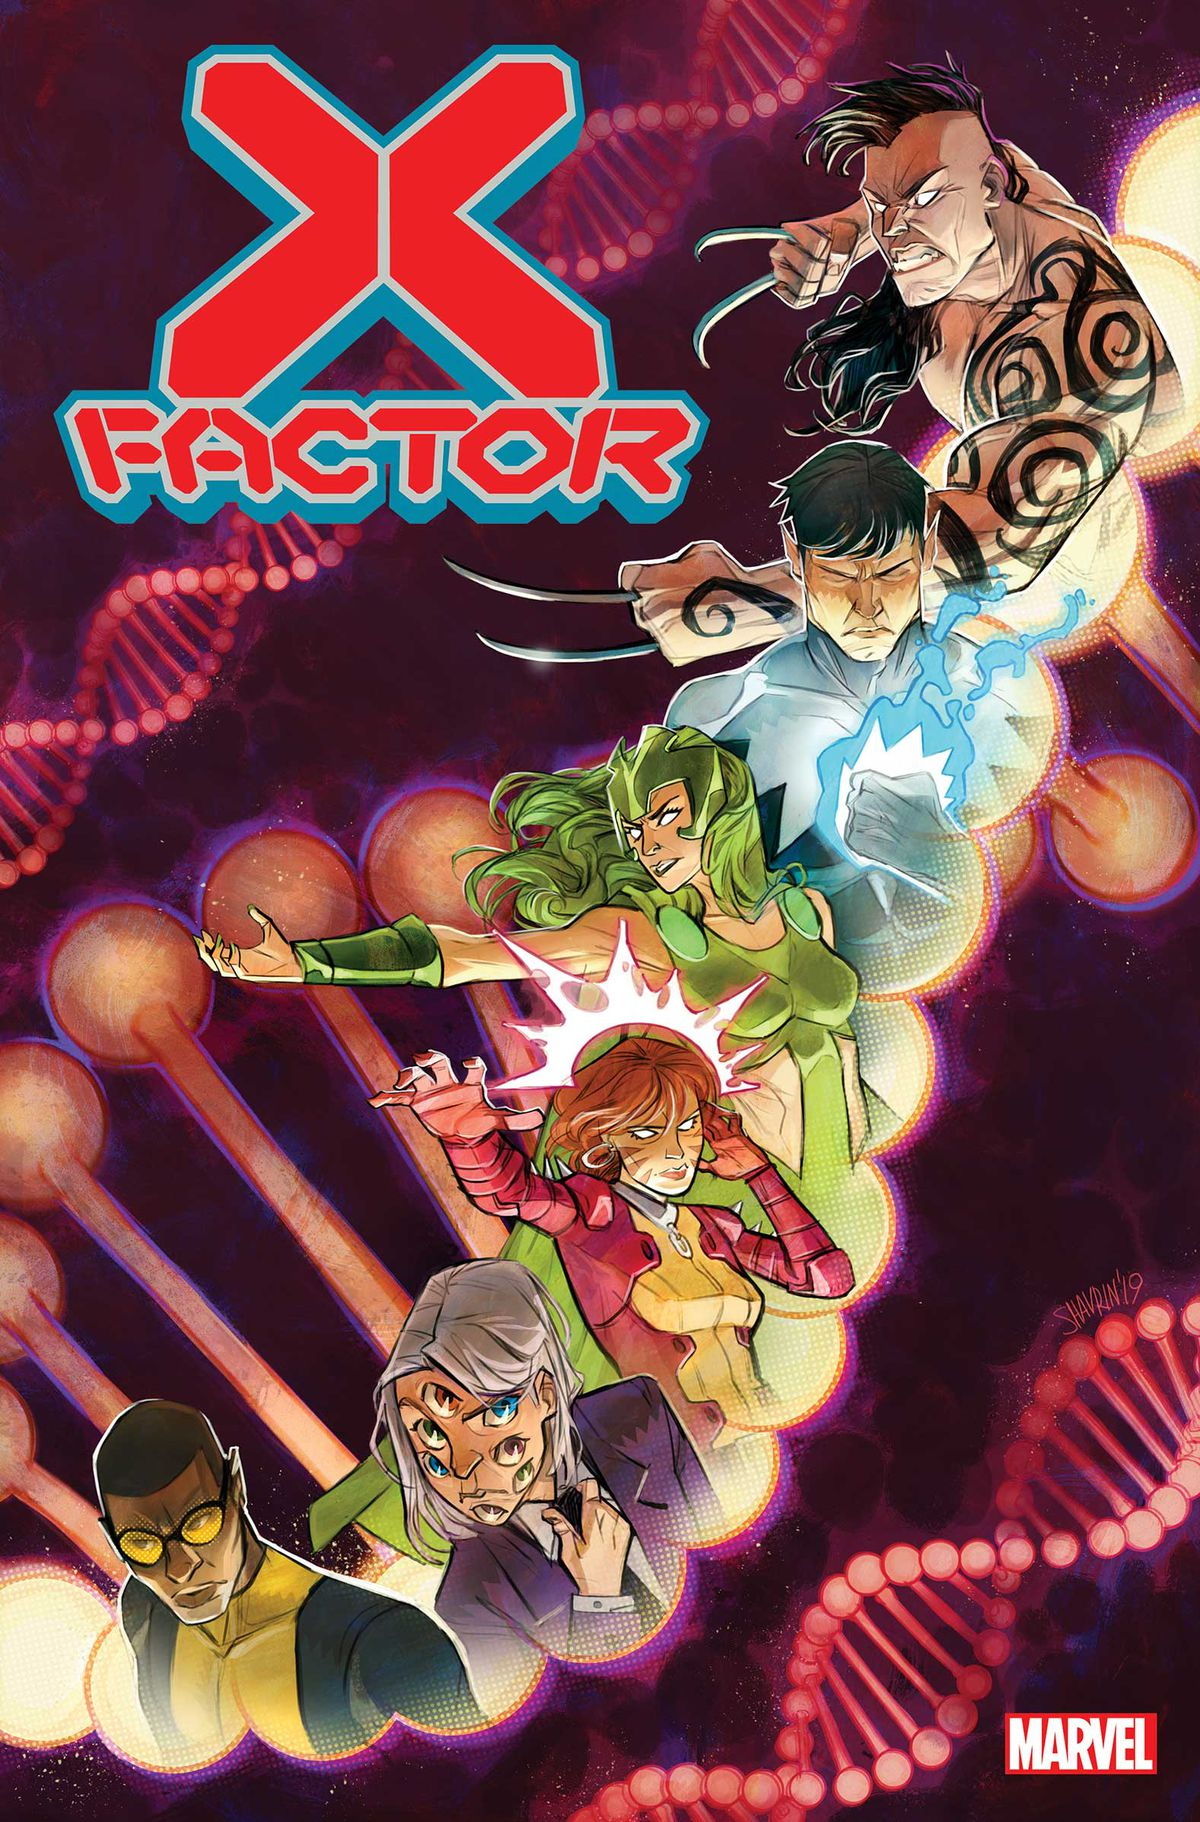 Exclusive Marvel S New X Factor Series Will Investigate